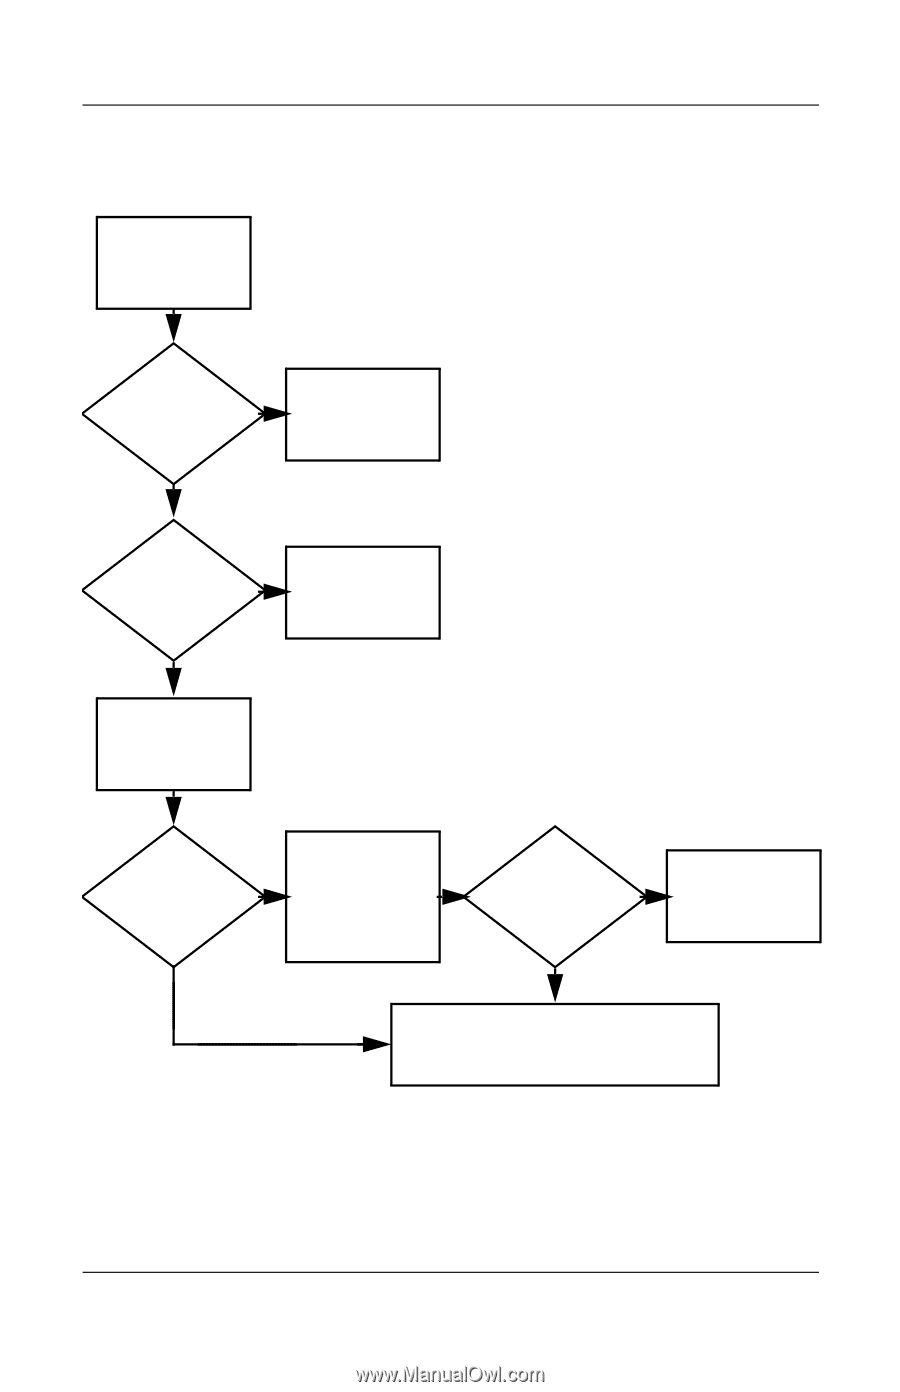 2–22. Maintenance and Service Guide